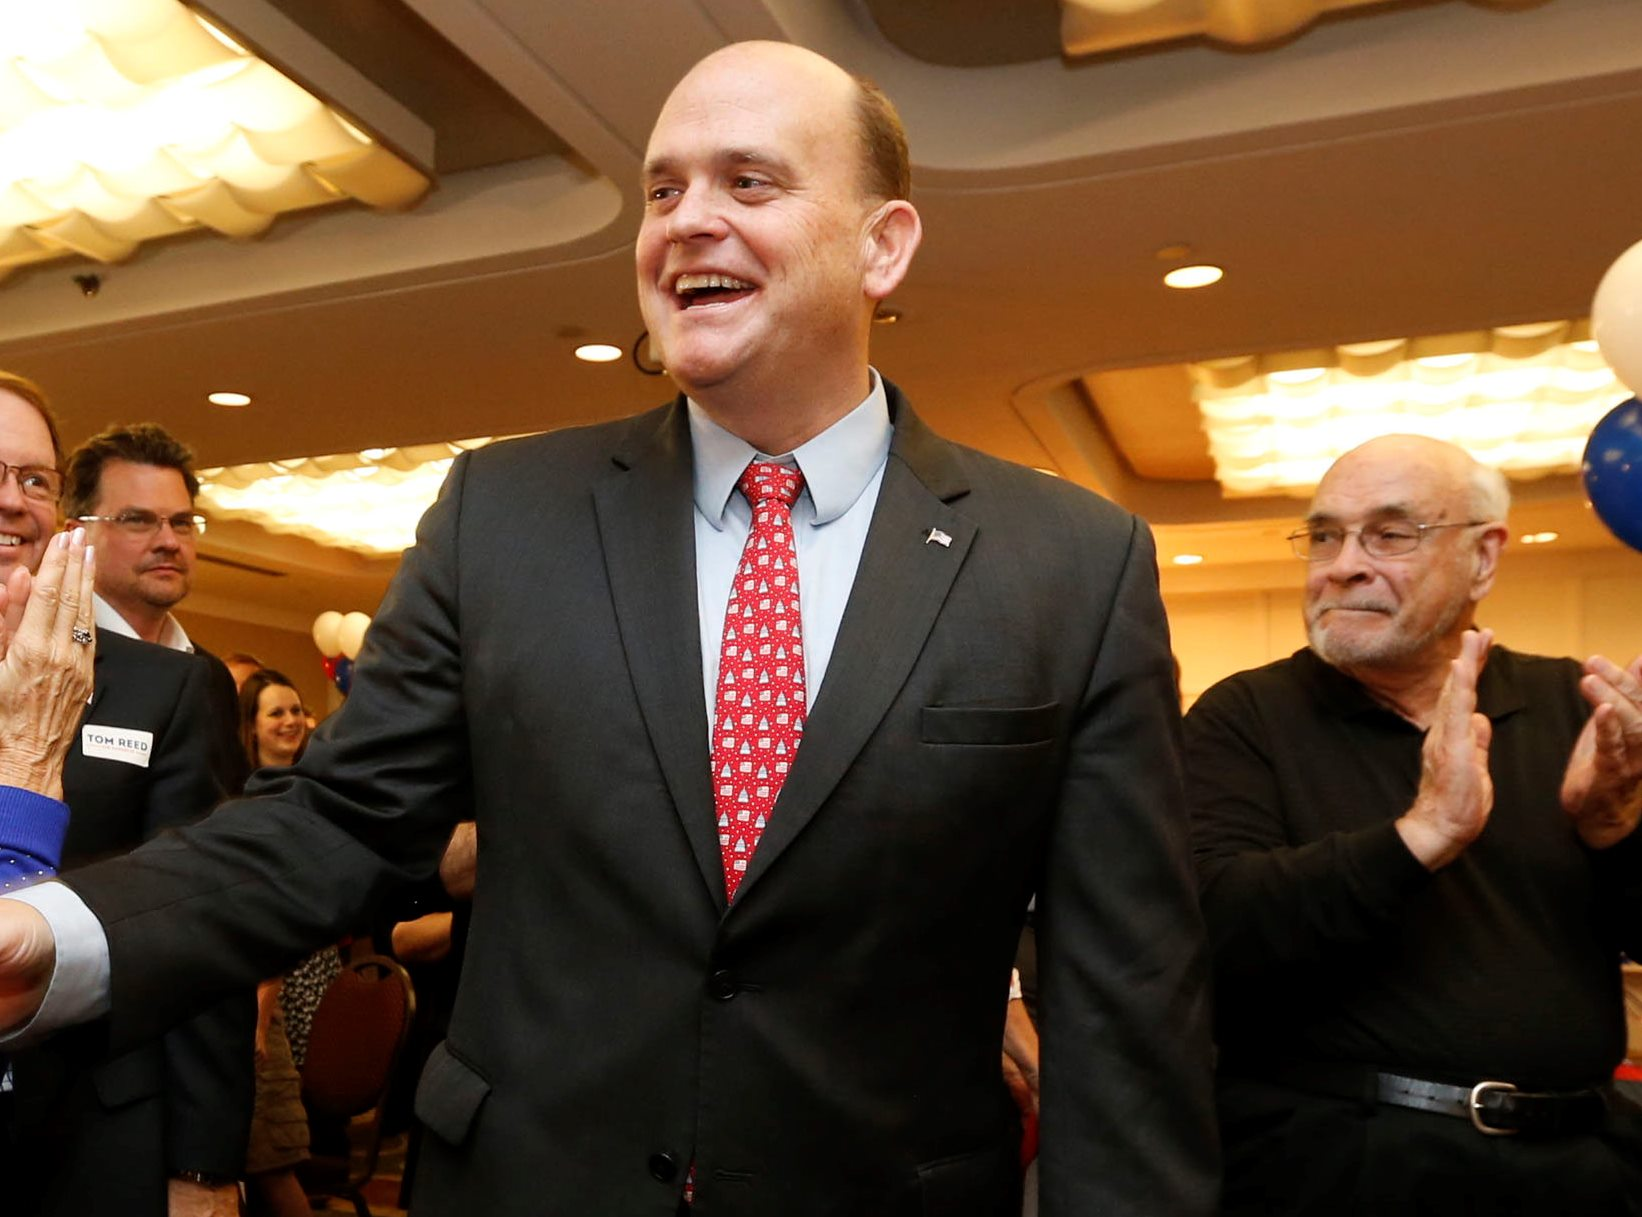 Rep. Tom Reed attended a meeting at the White House today organized by Rep. Chris Collins. (Robert Kirkham/Buffalo News)